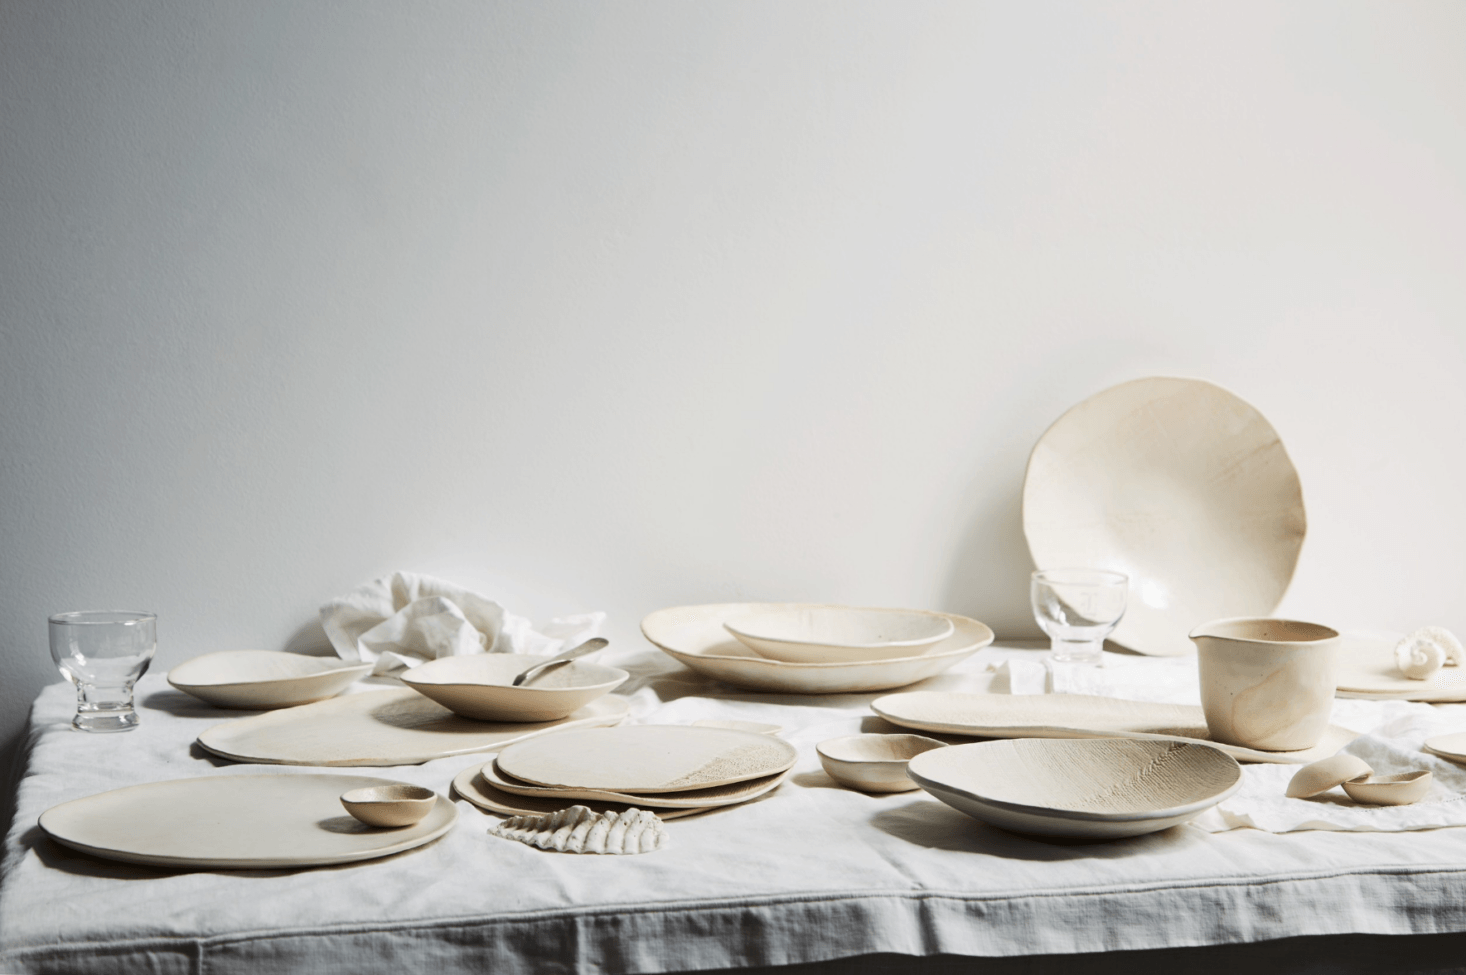 Current Obsessions: The Chef and the Ceramicist